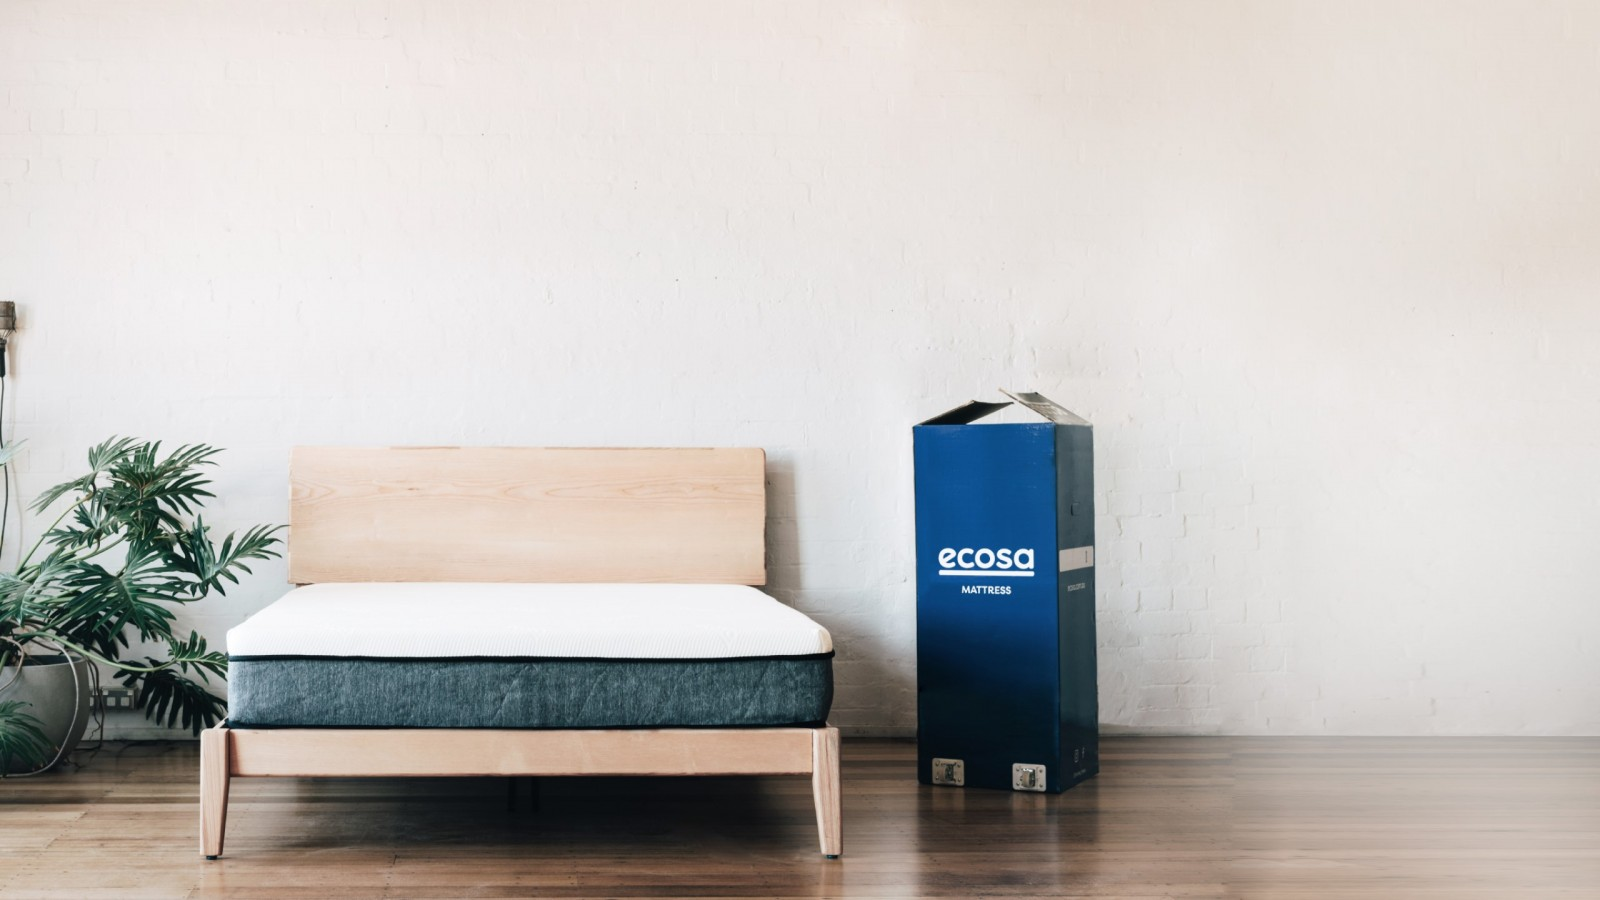 bed next to box